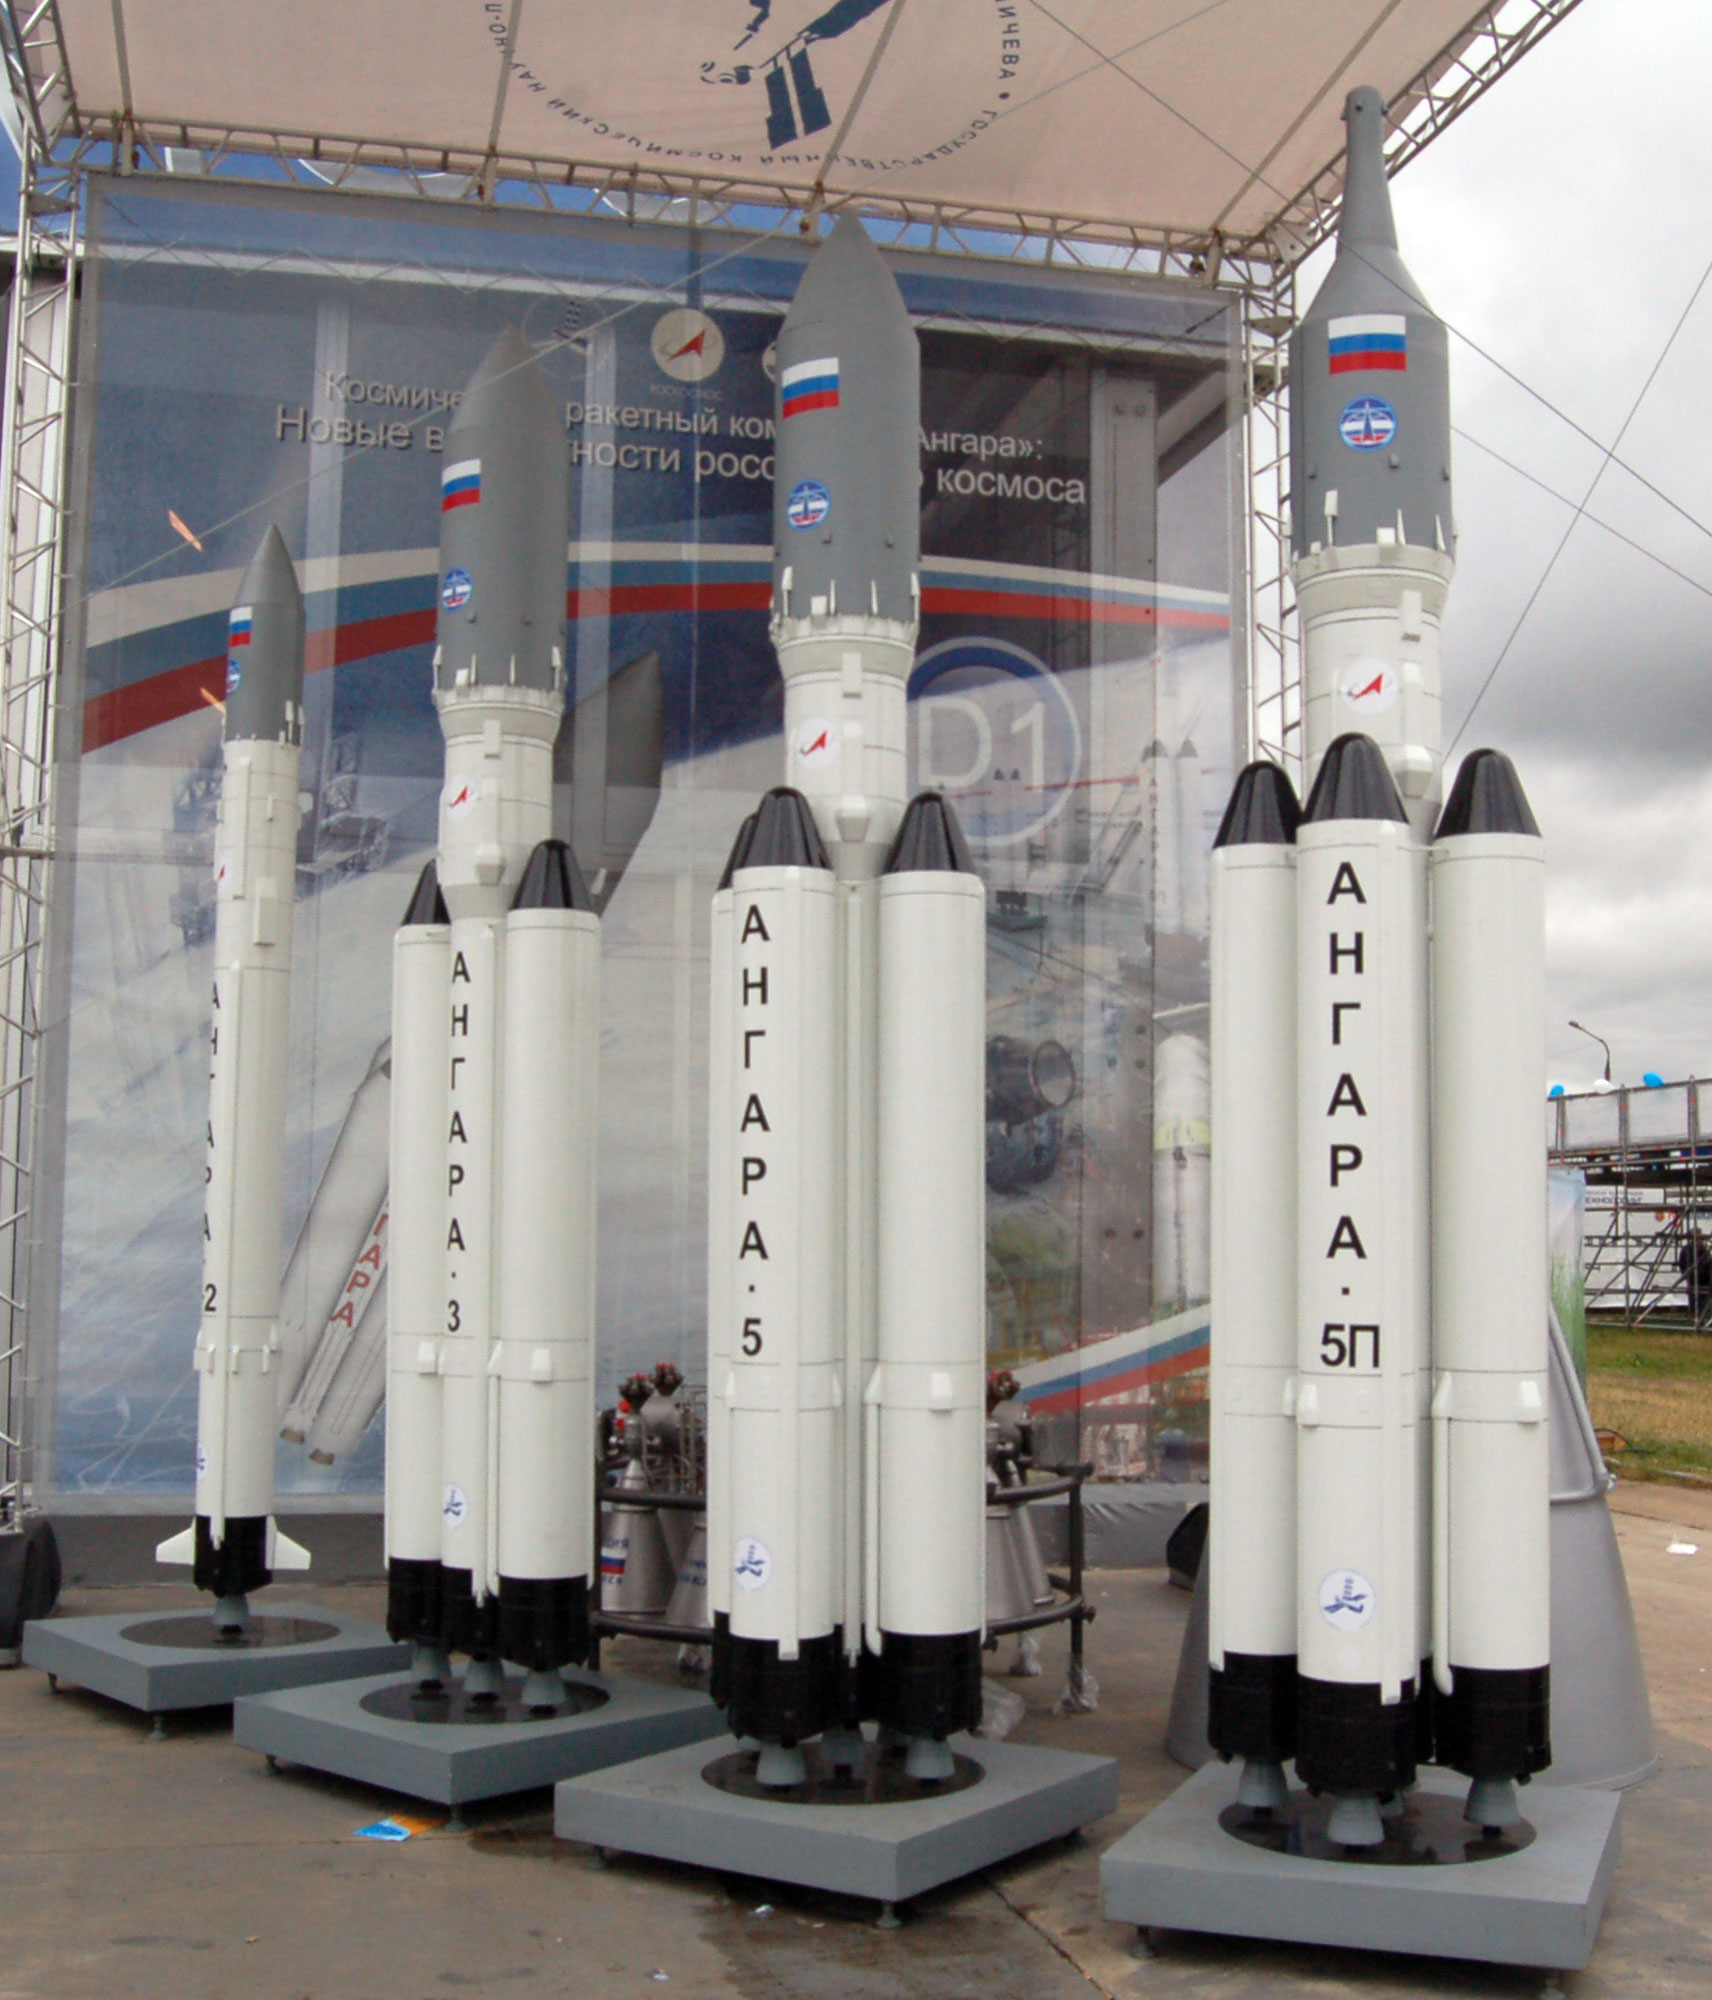 http://upload.wikimedia.org/wikipedia/commons/e/e4/Angara_missiles.jpg